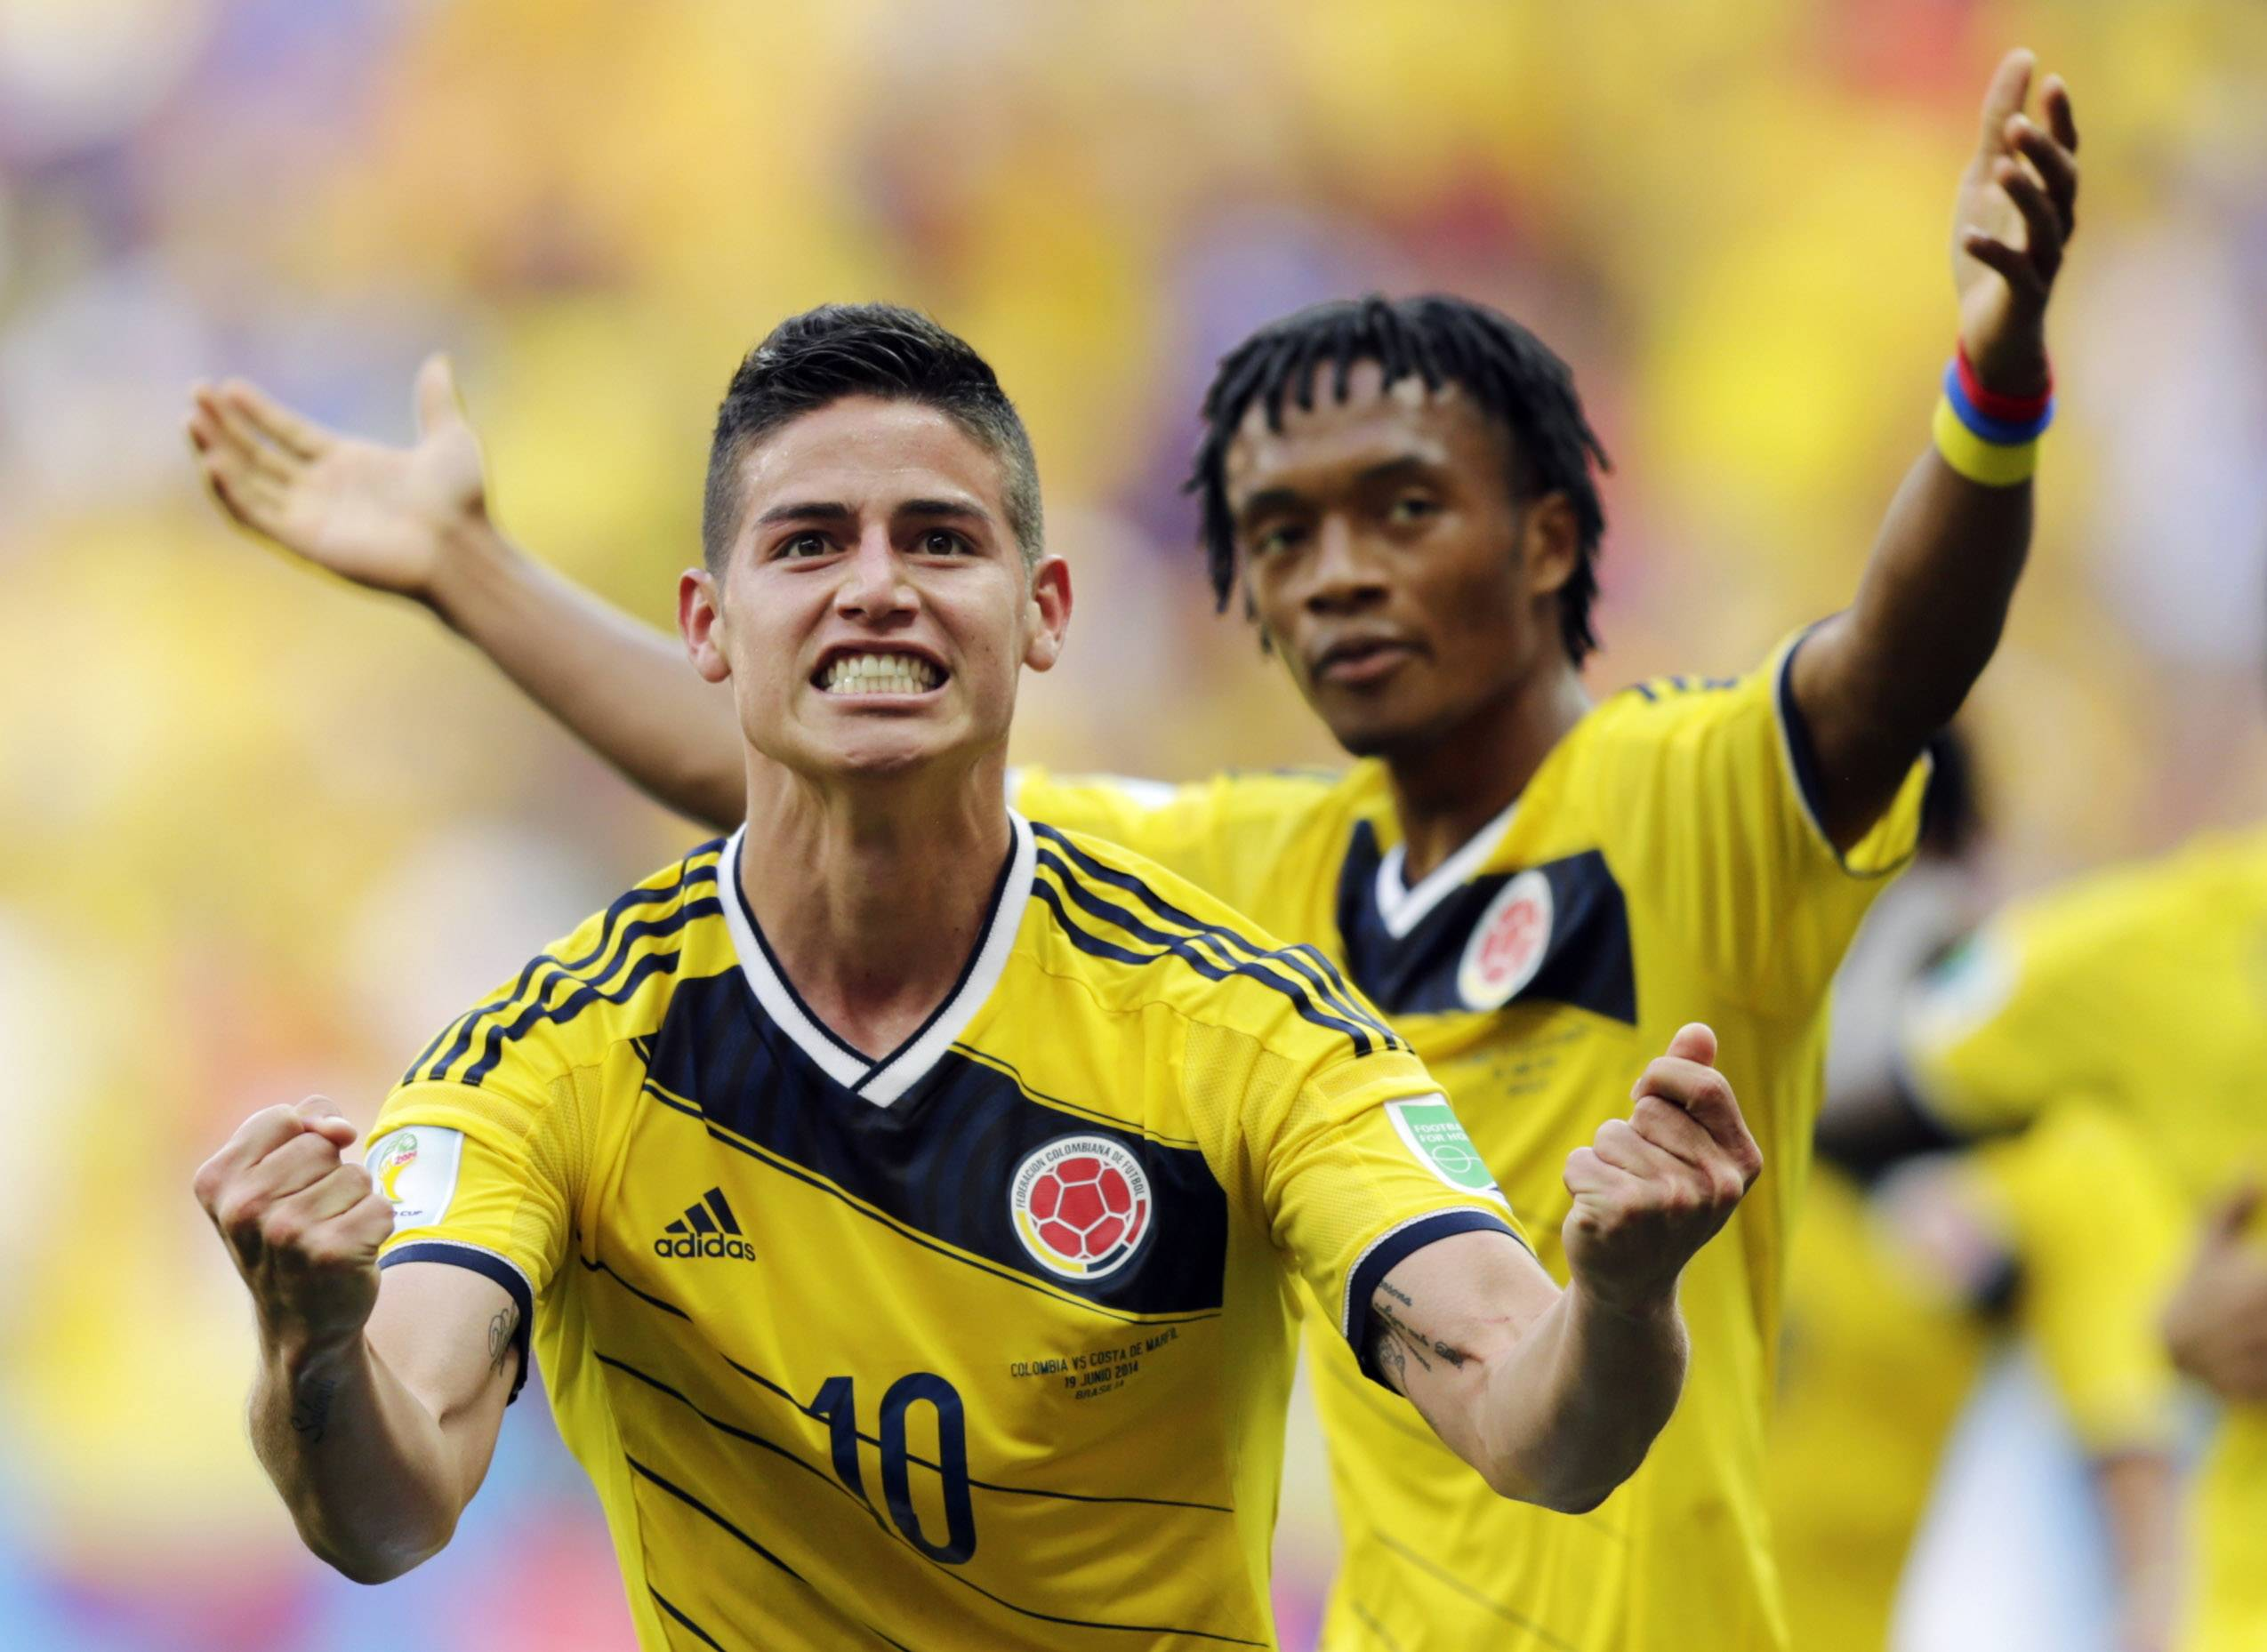 Colombia beats Ivory Coast 2-1 in World Cup